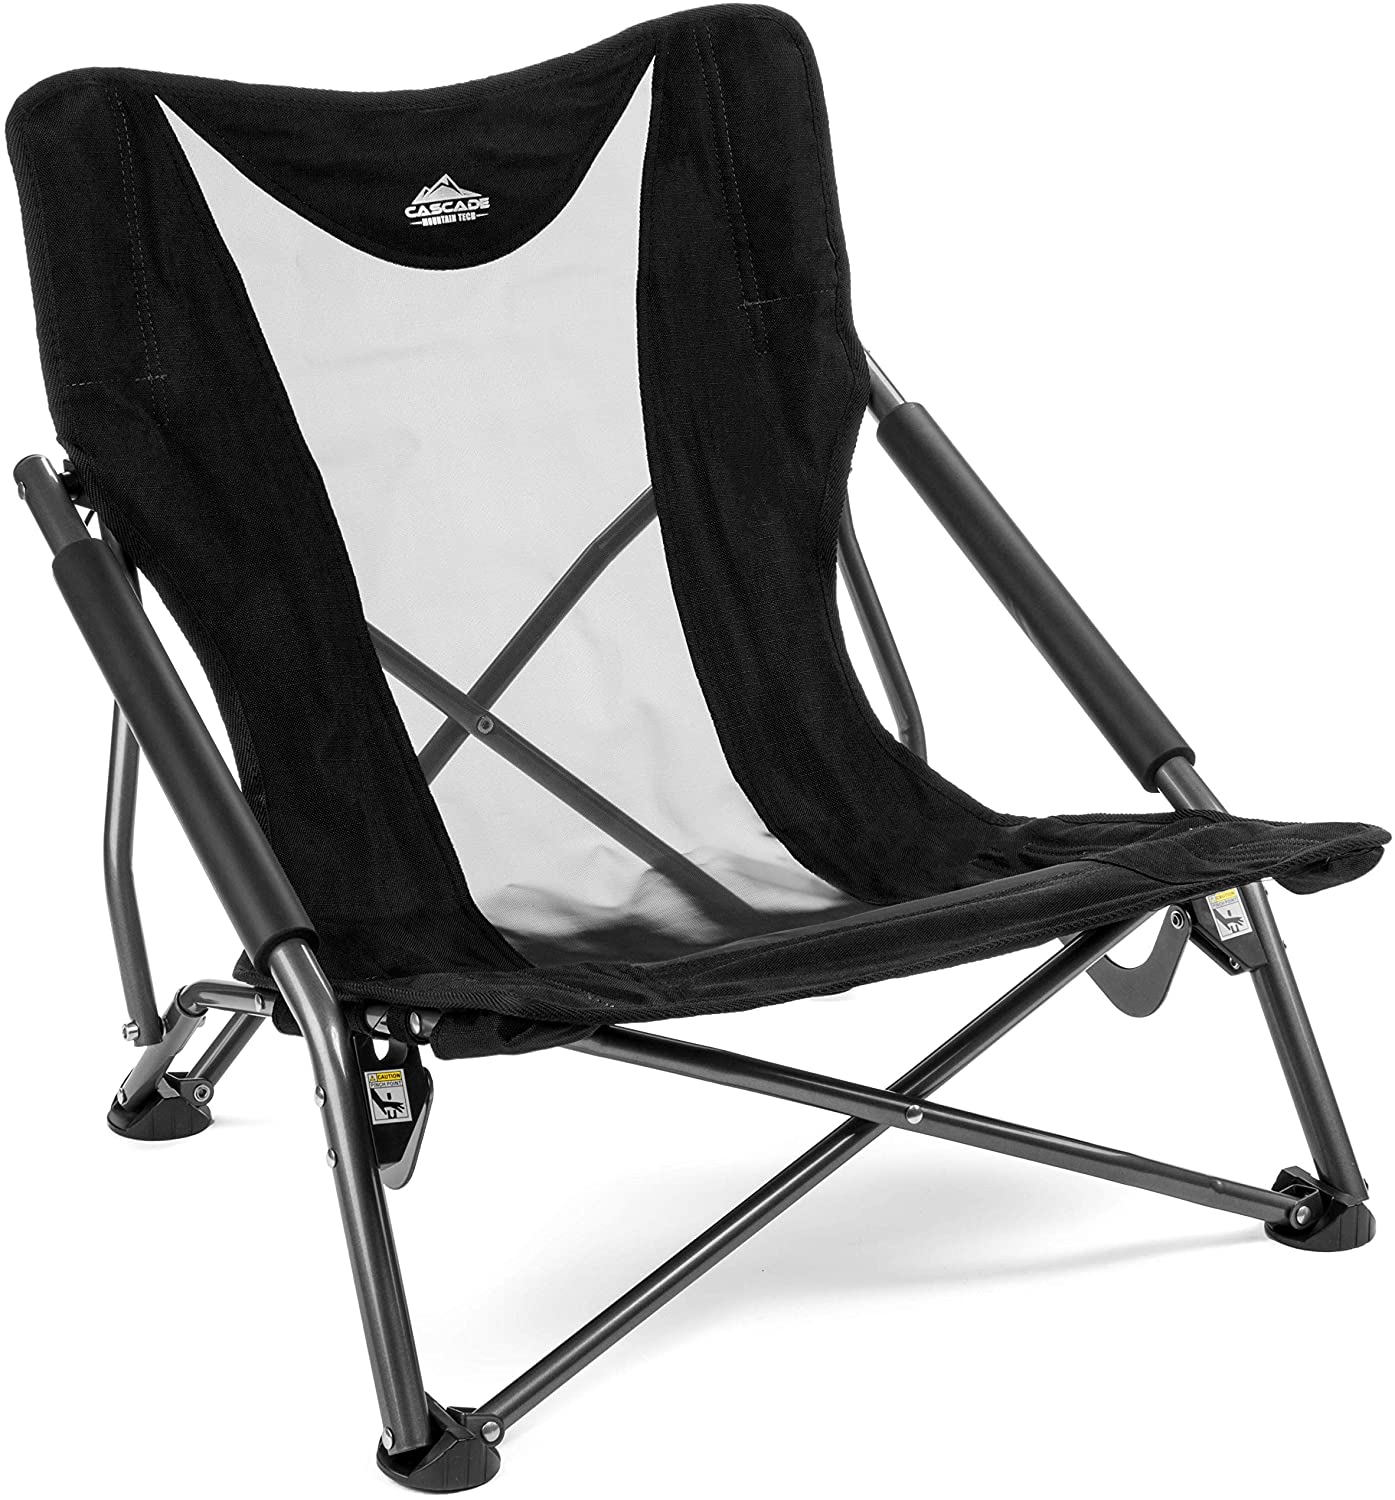 Cascade Mountain Compact Lightweight Folding Beach Chair